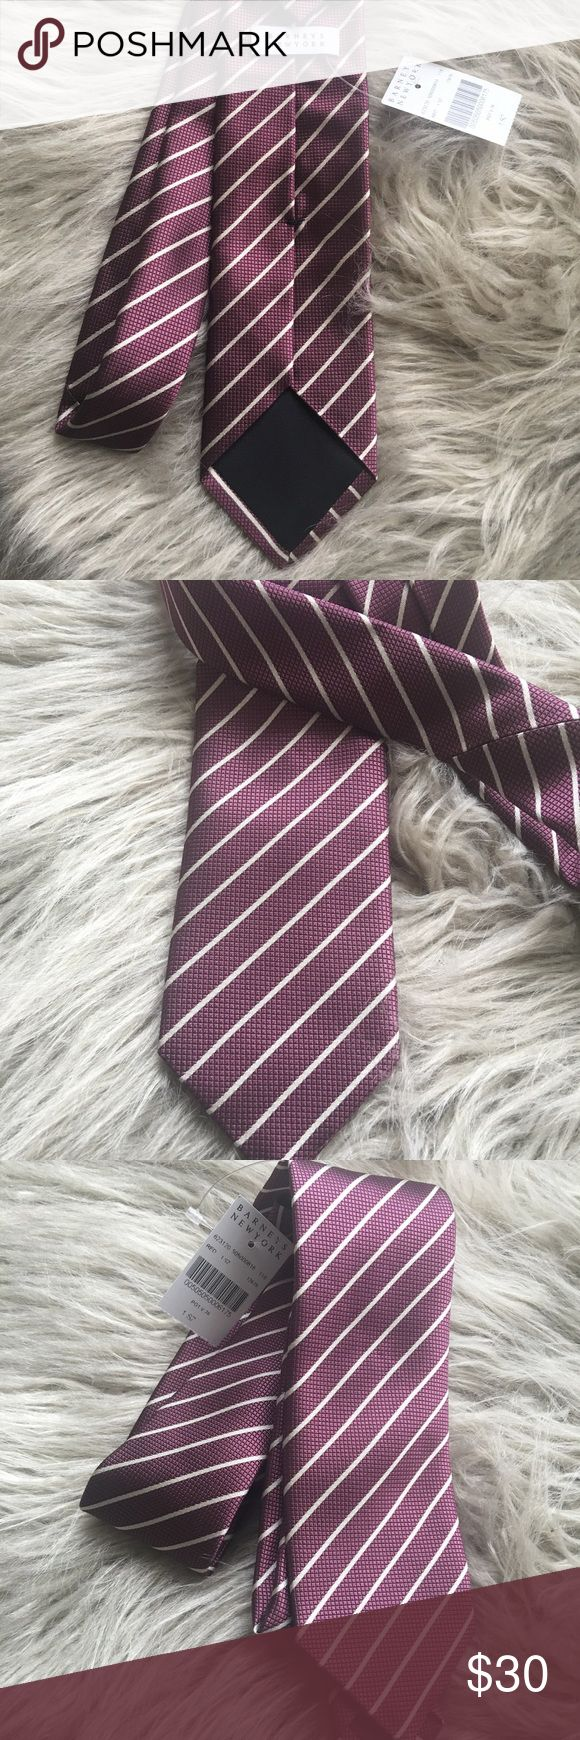 NWT Barneys New York Stripes Slim Tie Perfect over a fresh white button down!! Bundle and save!! The color is wine color, very elegant!! Barneys New York Accessories Ties